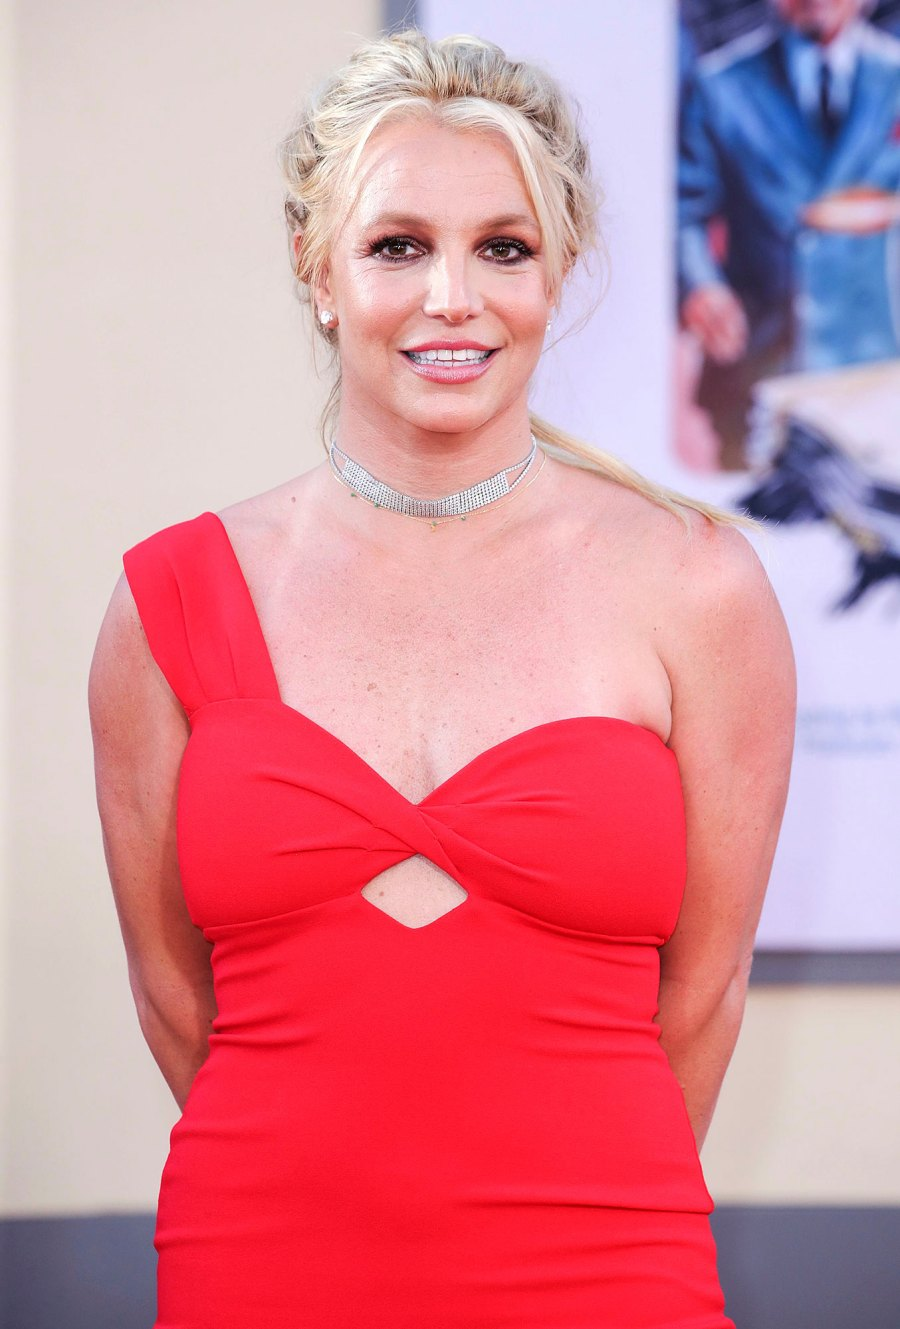 She Has a Degree in Social Welfare Who Is Jodi Montgomery 5 Things to Know About the Woman Britney Spears Wants as Her Conservator